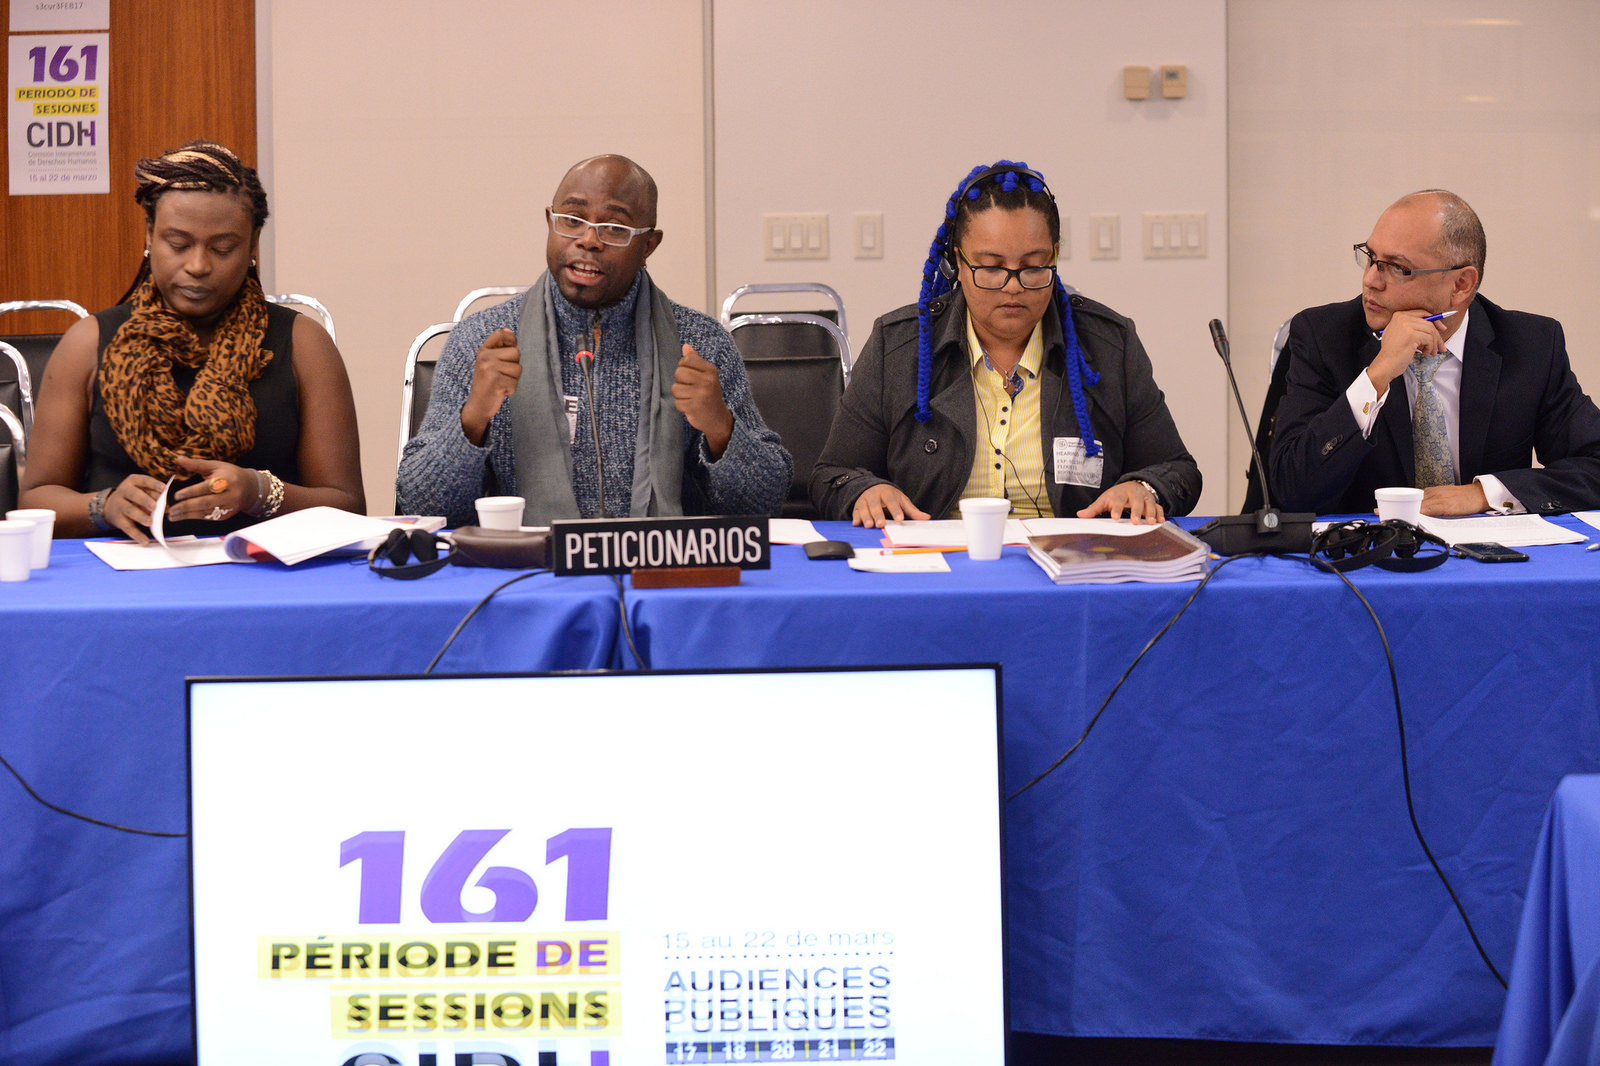 National Network of Black LGBT Persons in Brazil and the National Forum for Black Transgender Persons (FONATRANS) Denounce Violence Against LGBTI Afro-Brazilians Before the Inter-American Commission on Human Rights